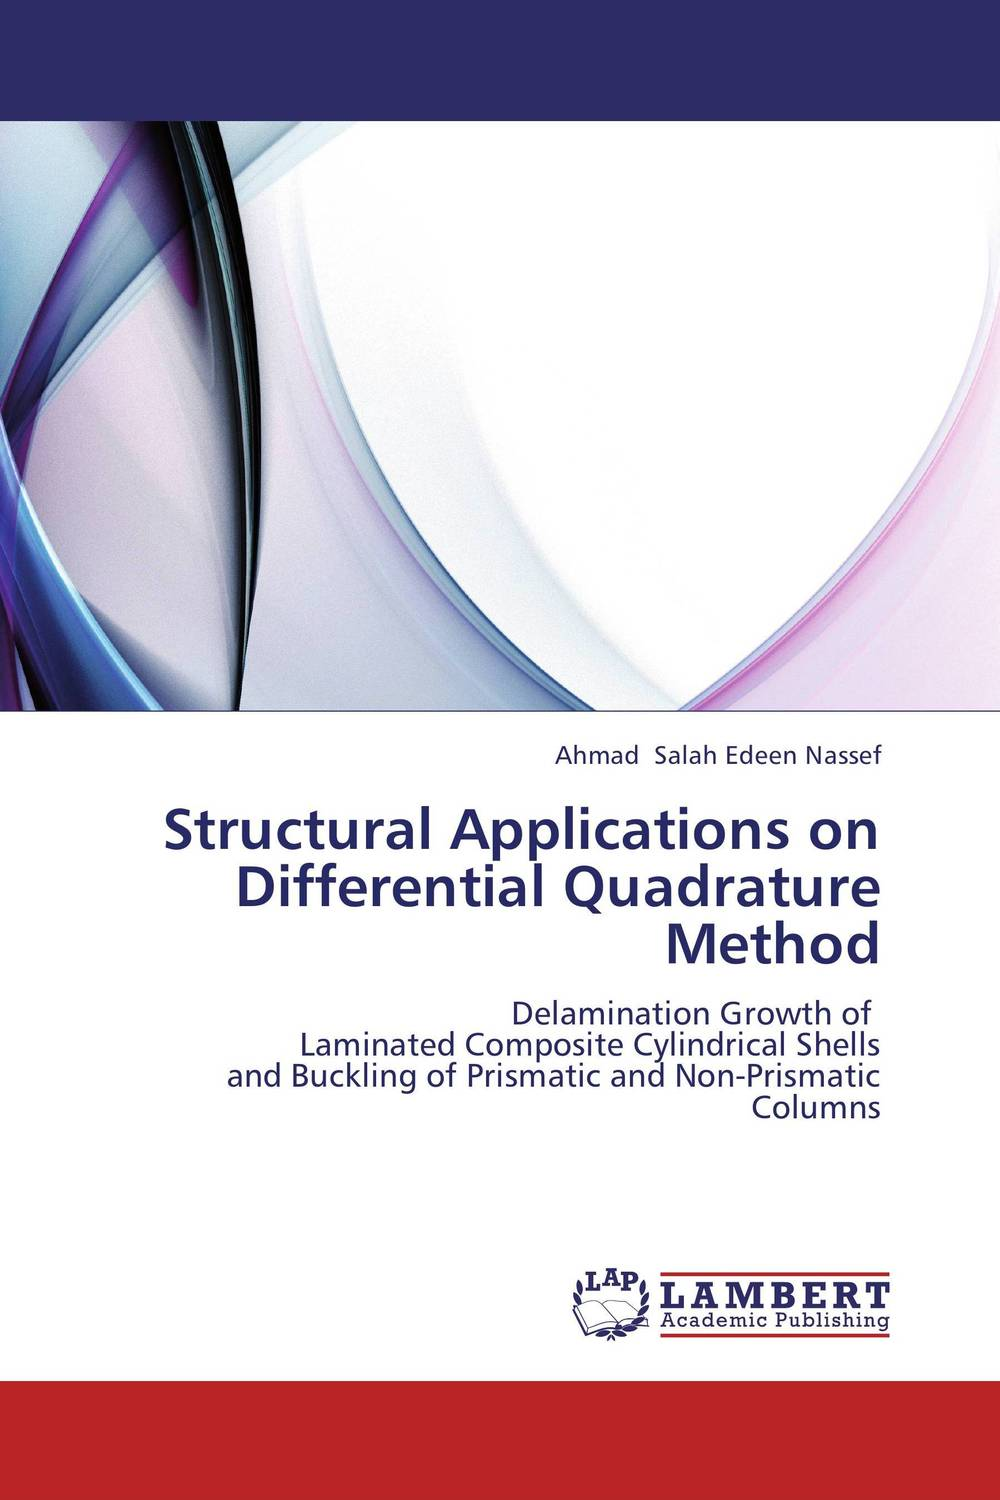 Structural Applications on Differential Quadrature Method buckling of composites